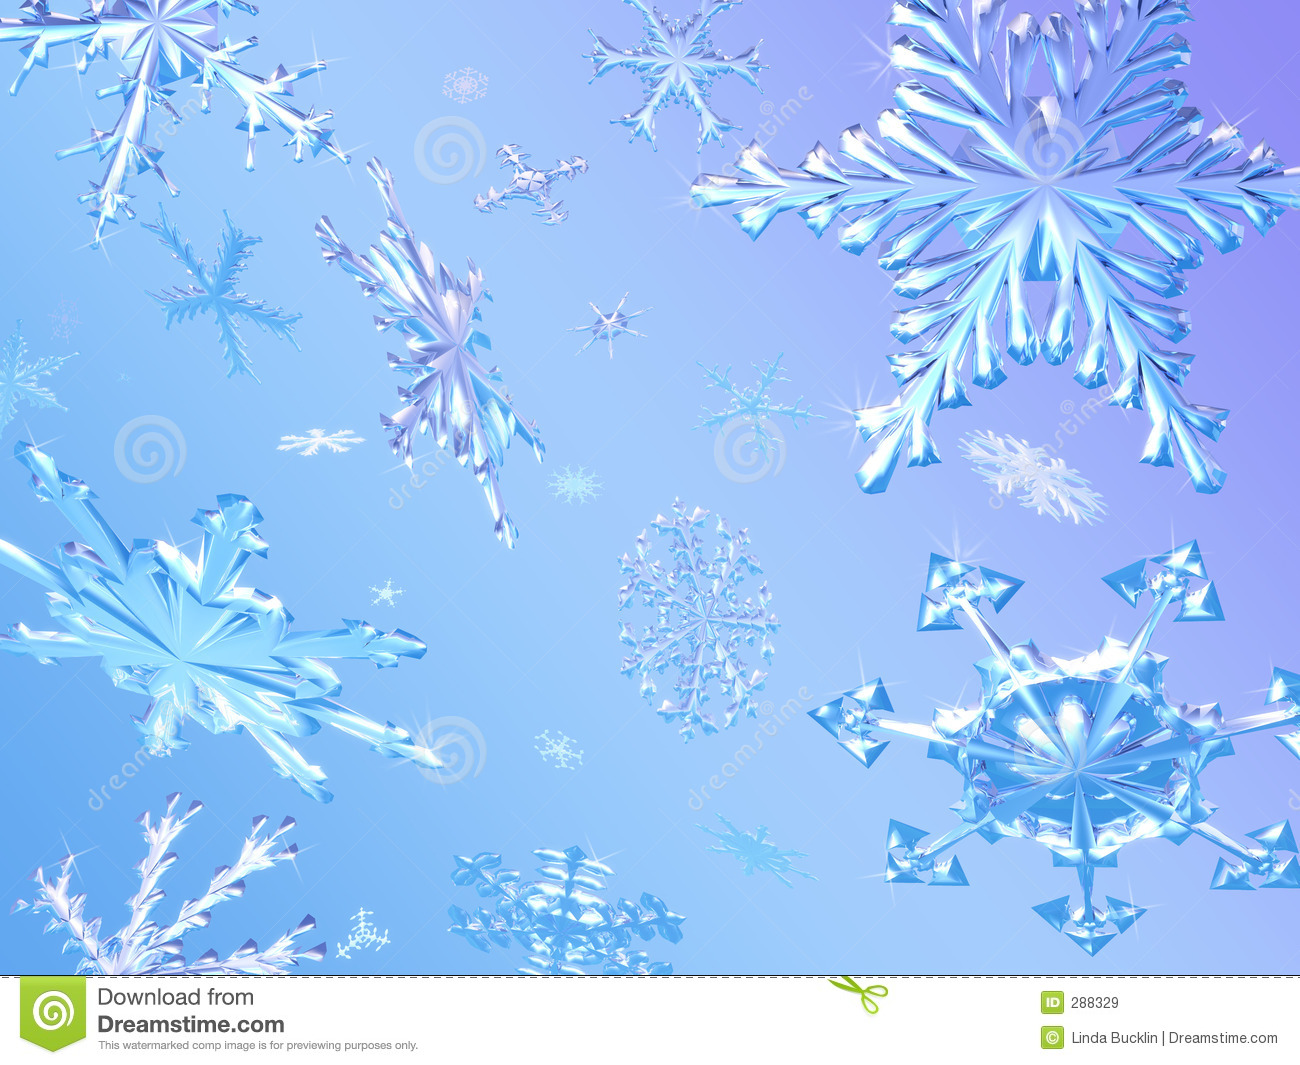 Snowflakes Falling Royalty Free Stock Images - Image: 288329